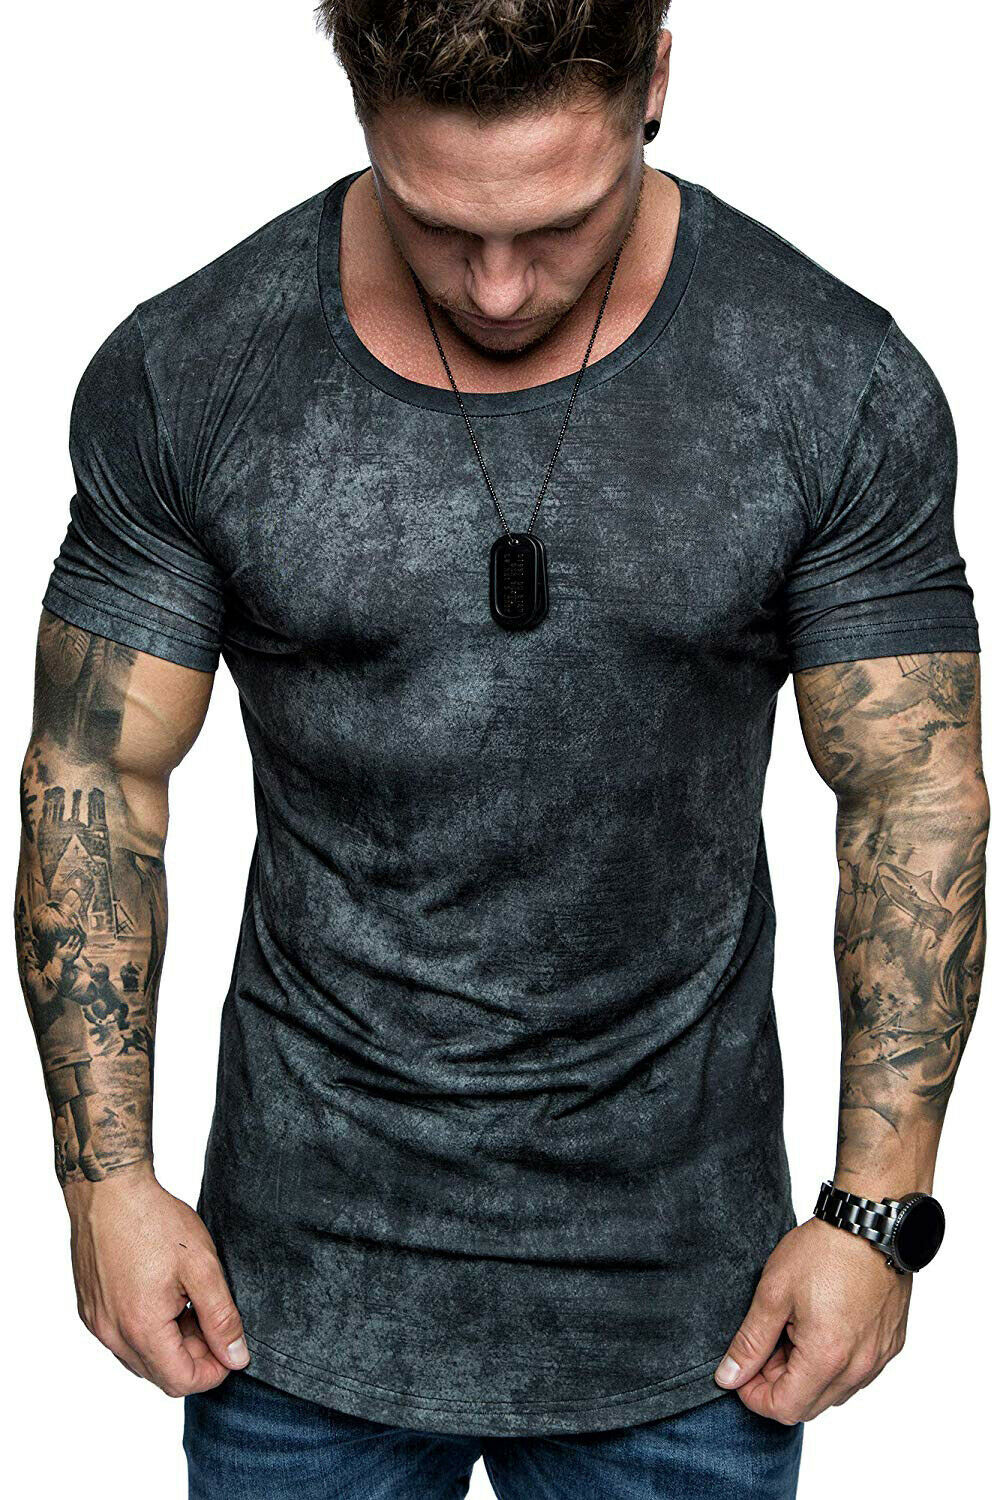 2019 Hot Sale Men's Casual Slim Fit Short Sleeve Muscle Tee Tops Fashion Male Print Fitness T-shirt Slim Pullover Top Clothes